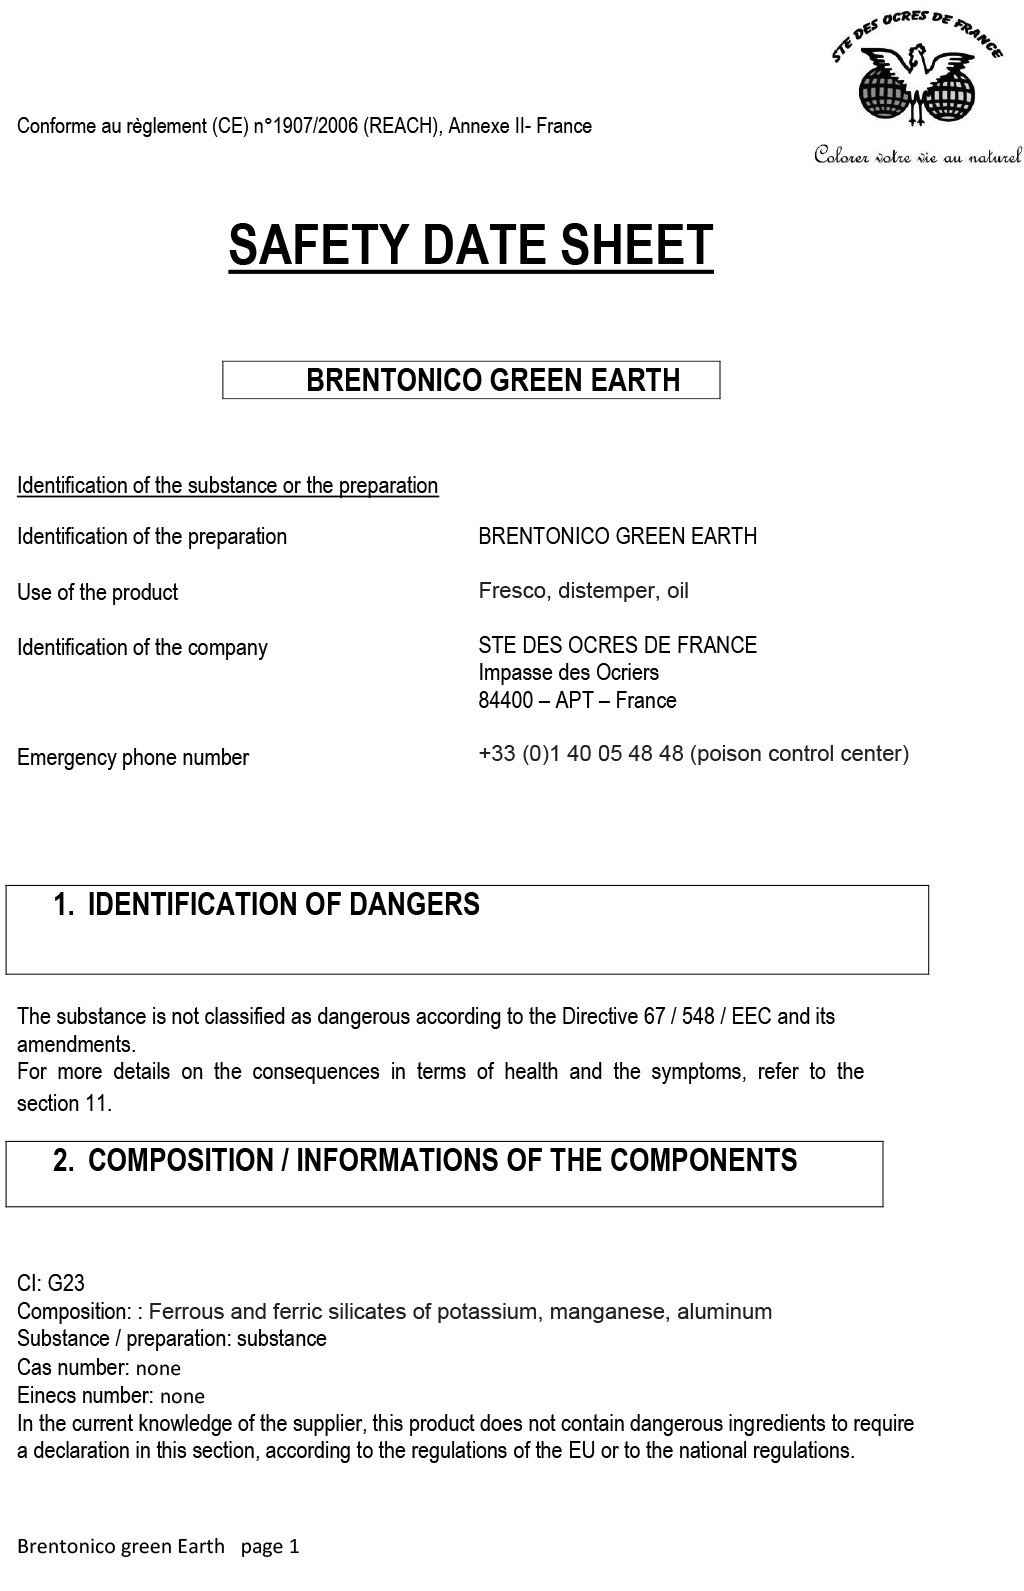 msds-brentonico-green-earth-2-1.jpg